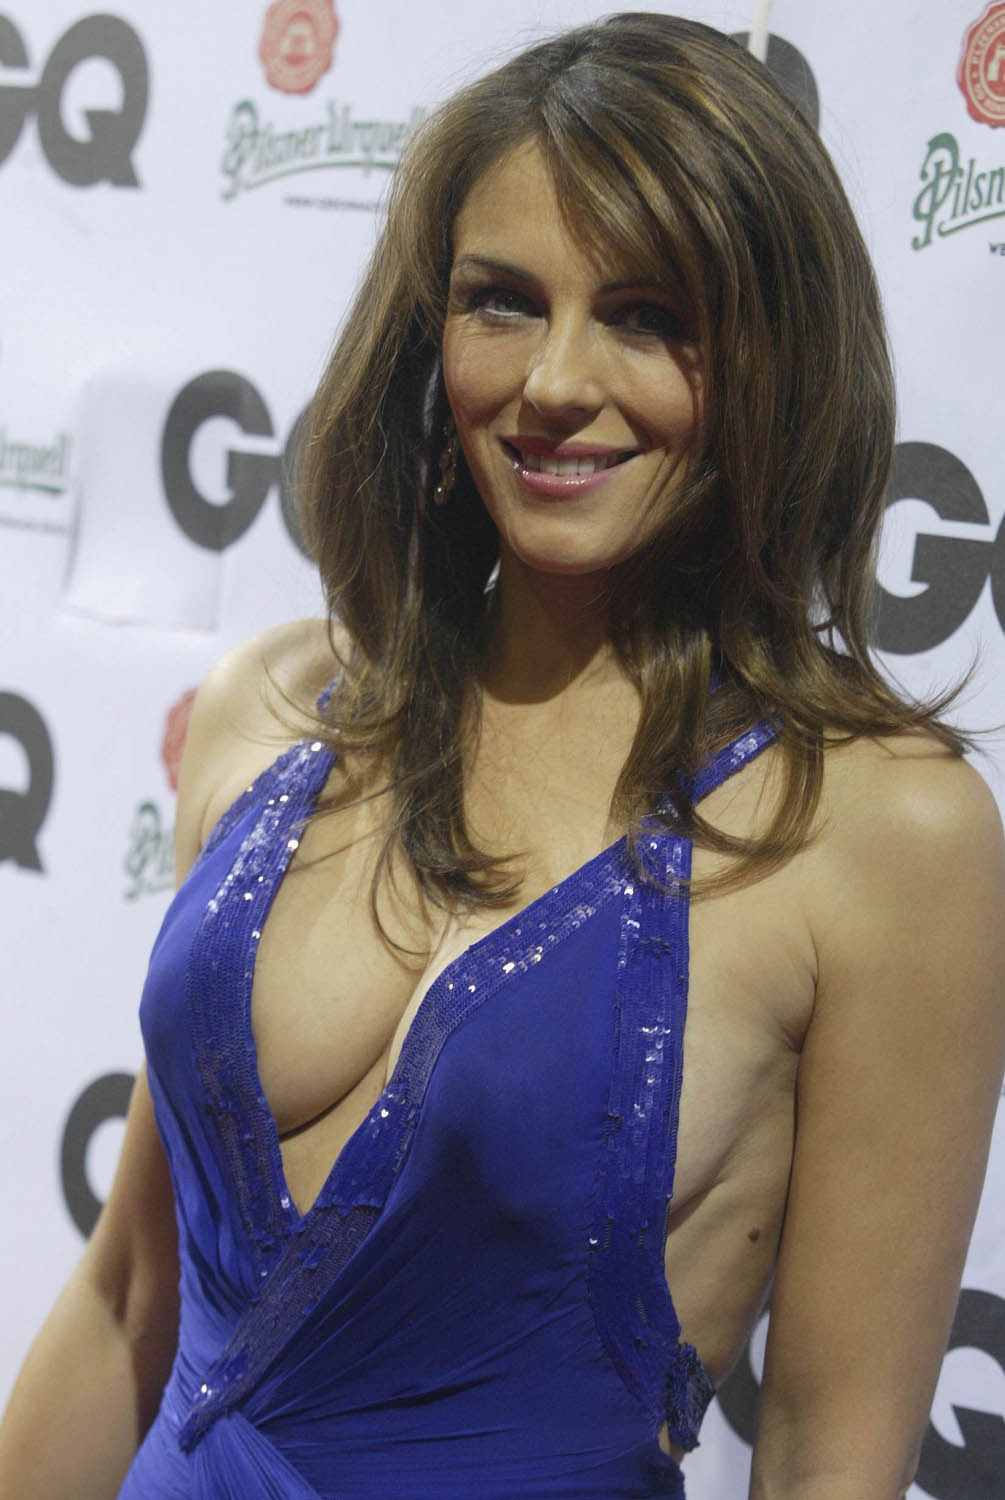 Fappening Elizabeth Hurley nude (21 photo), Sexy, Paparazzi, Twitter, cleavage 2006